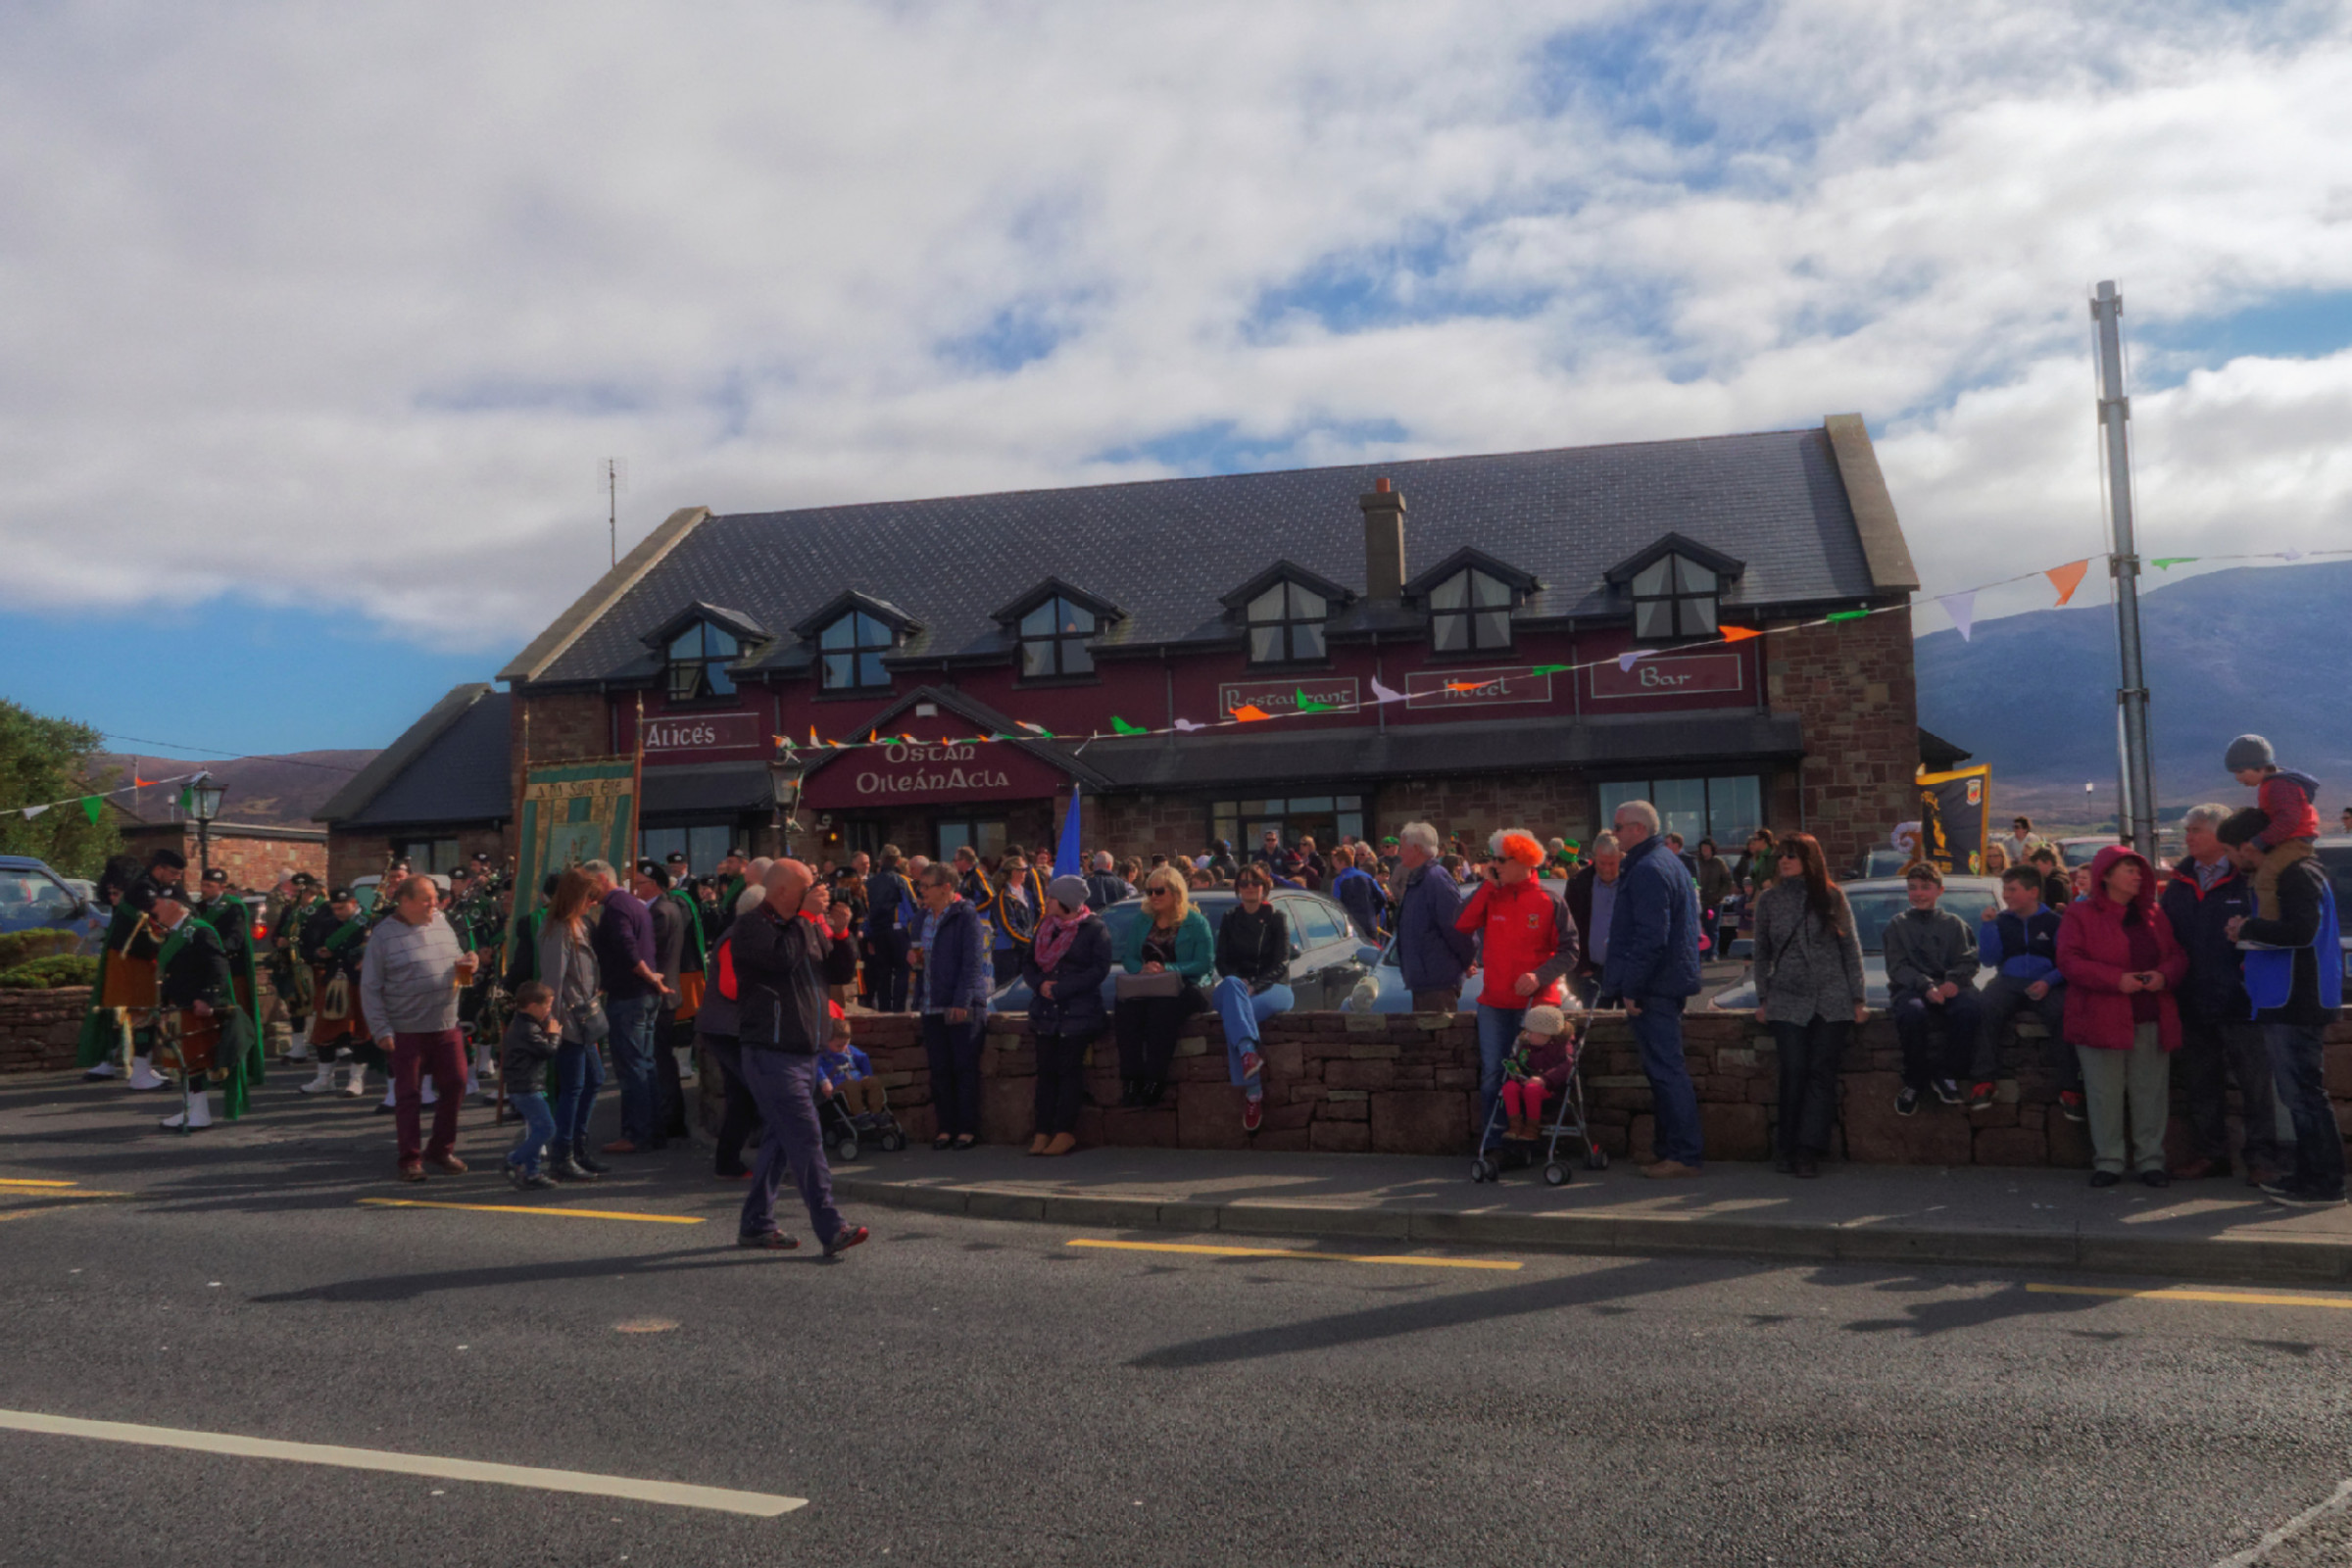 20160320125040-ie-achill-sound_parade-_DxO_13in_DxO96